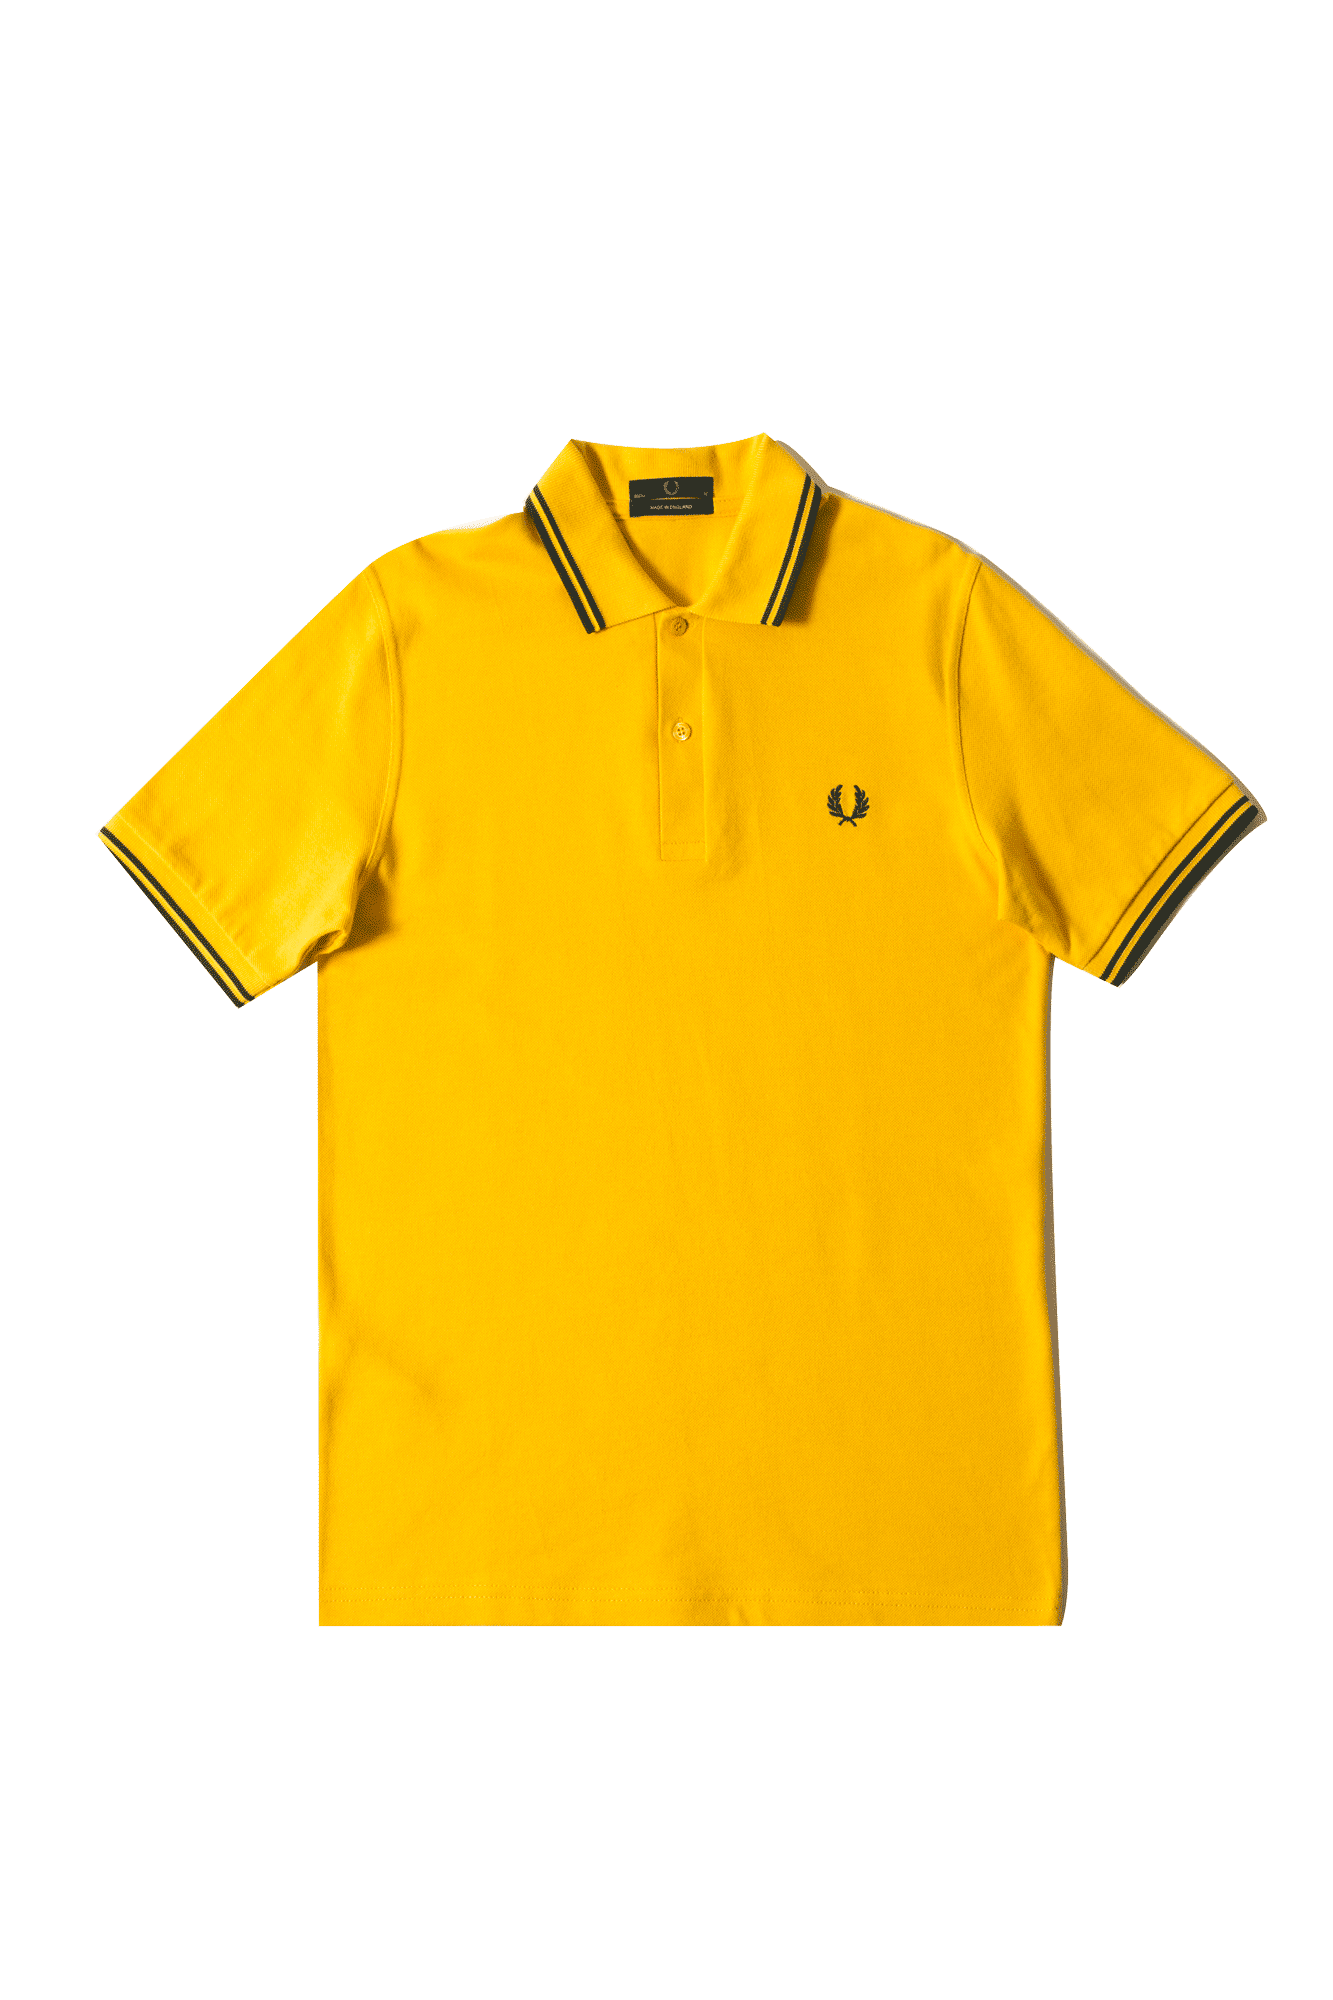 Fred Perry Polo Twin Tipped Shirt Giallo M12971#000#C0008#44 - One Block Down